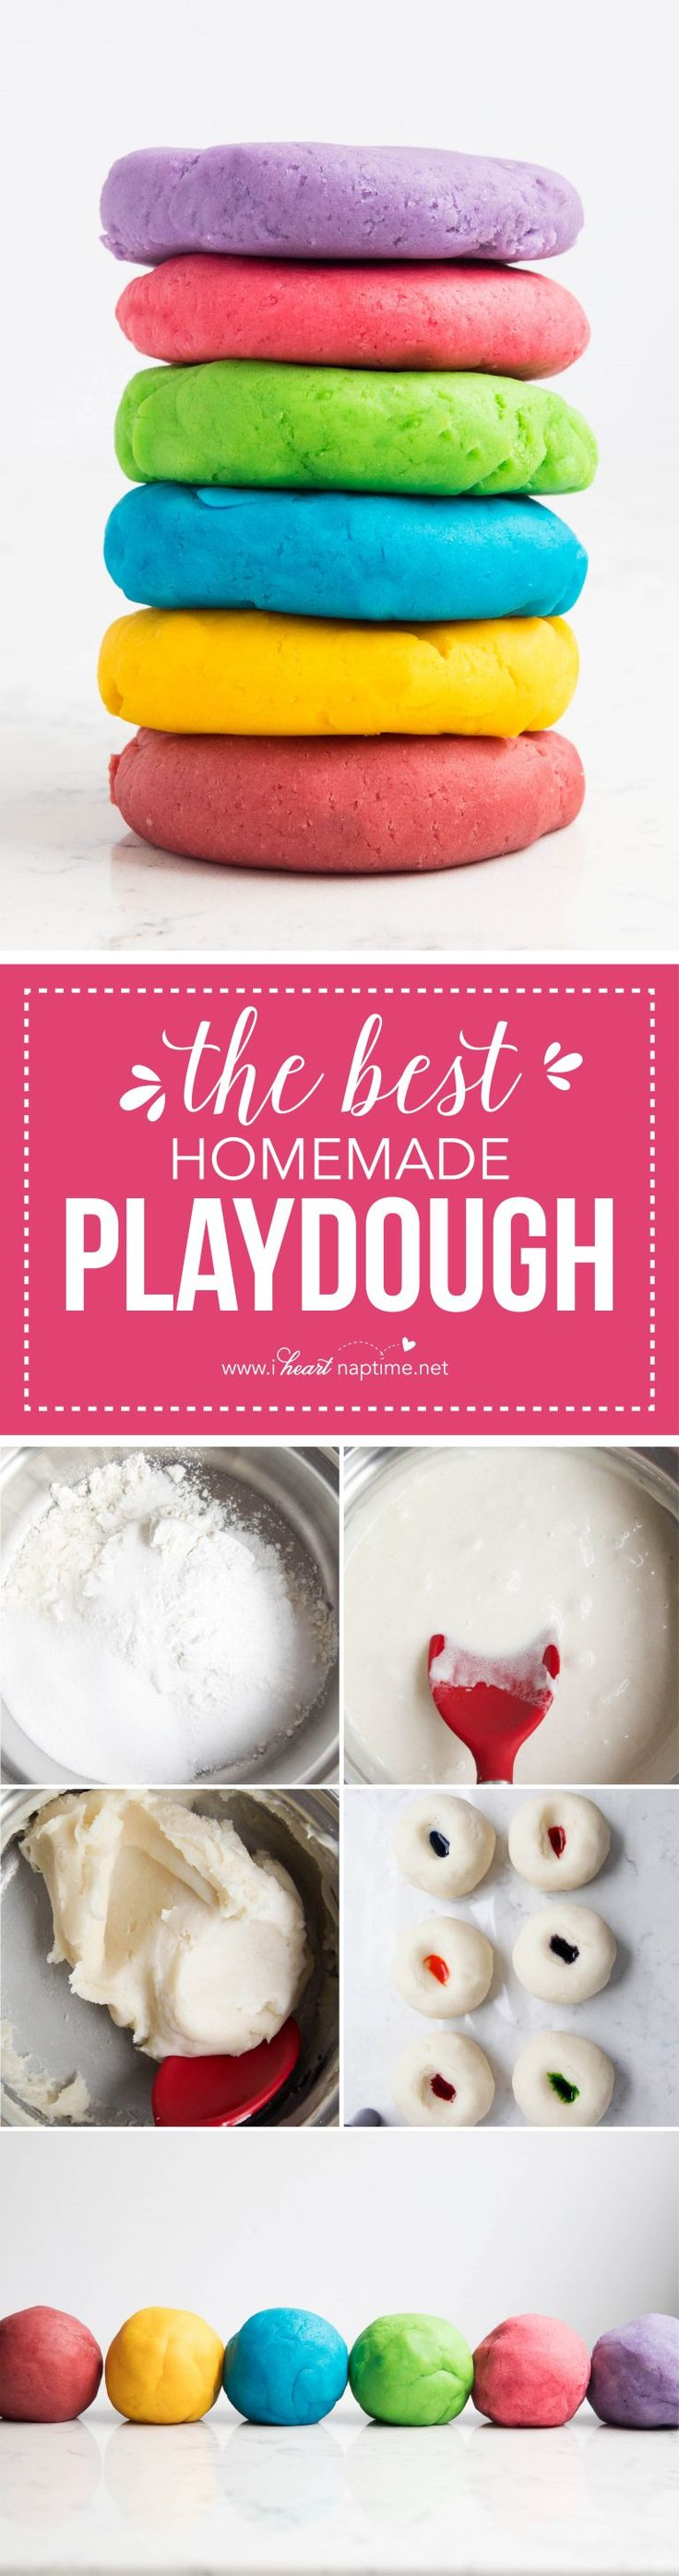 The BEST play dough recipe - make in less than 5 minutes for under a $1 and have it last for months! It is so soft and squishy and cuts perfectly with cookie cutters. Made in partnership with @krogerco #Kroger